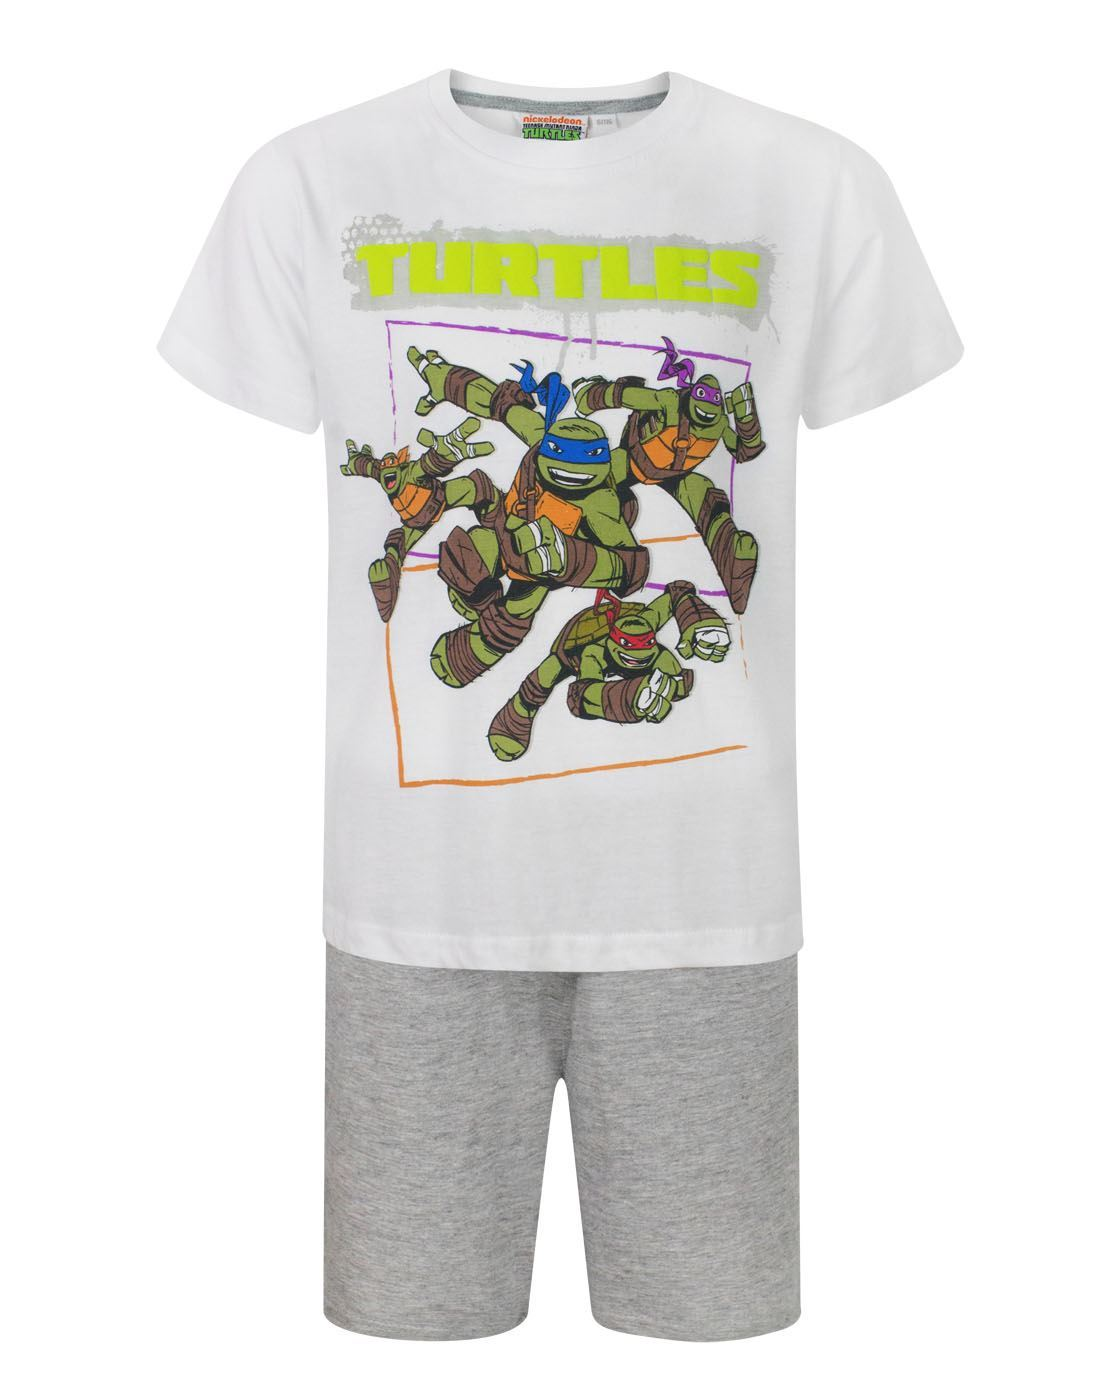 Teenage Mutant Ninja Turtles Group Boy s Pyjamas – Vanilla Underground 738fa238c